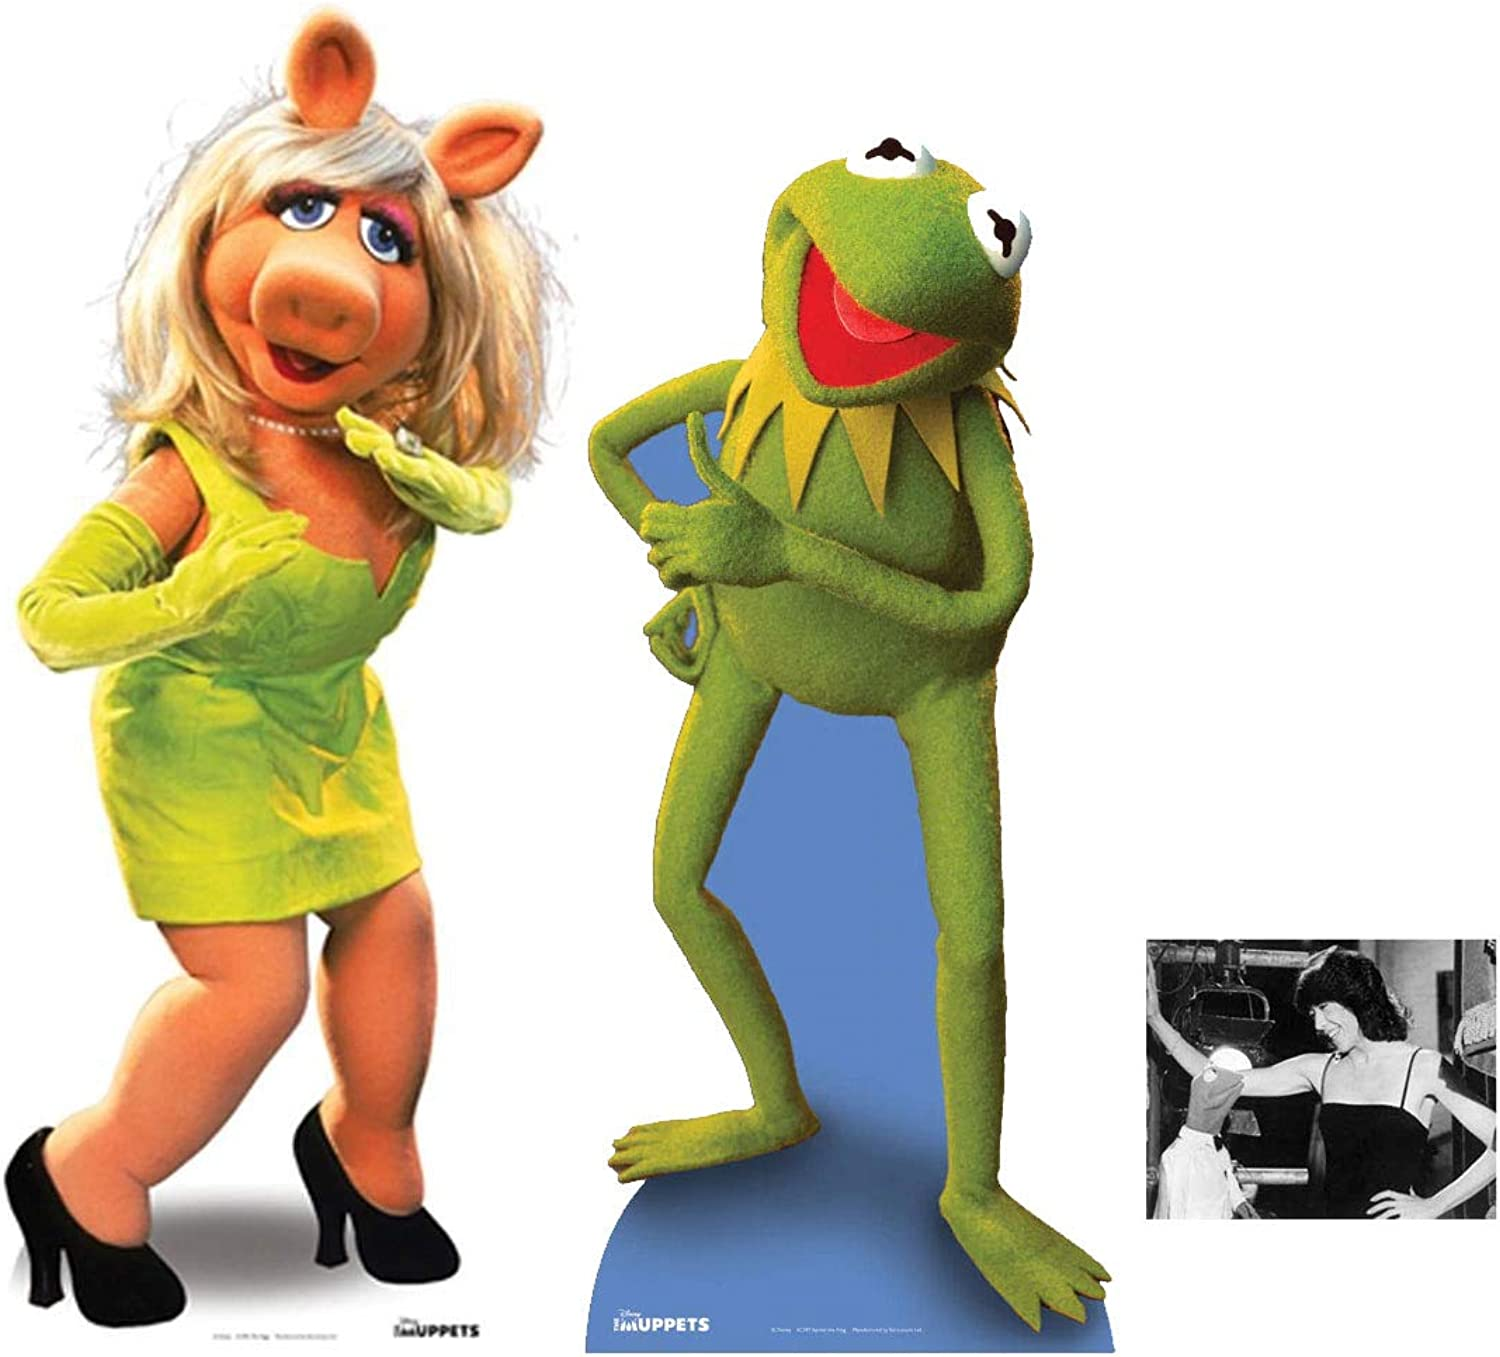 FAN PACK  Kermit and Miss Piggy (The Muppets) LIFESIZE CARDBOARD CUTOUT (STANDEE   STANDUP)  INCLUDES 8X10 (25X20CM) STAR PHOTO  FAN PACK  313